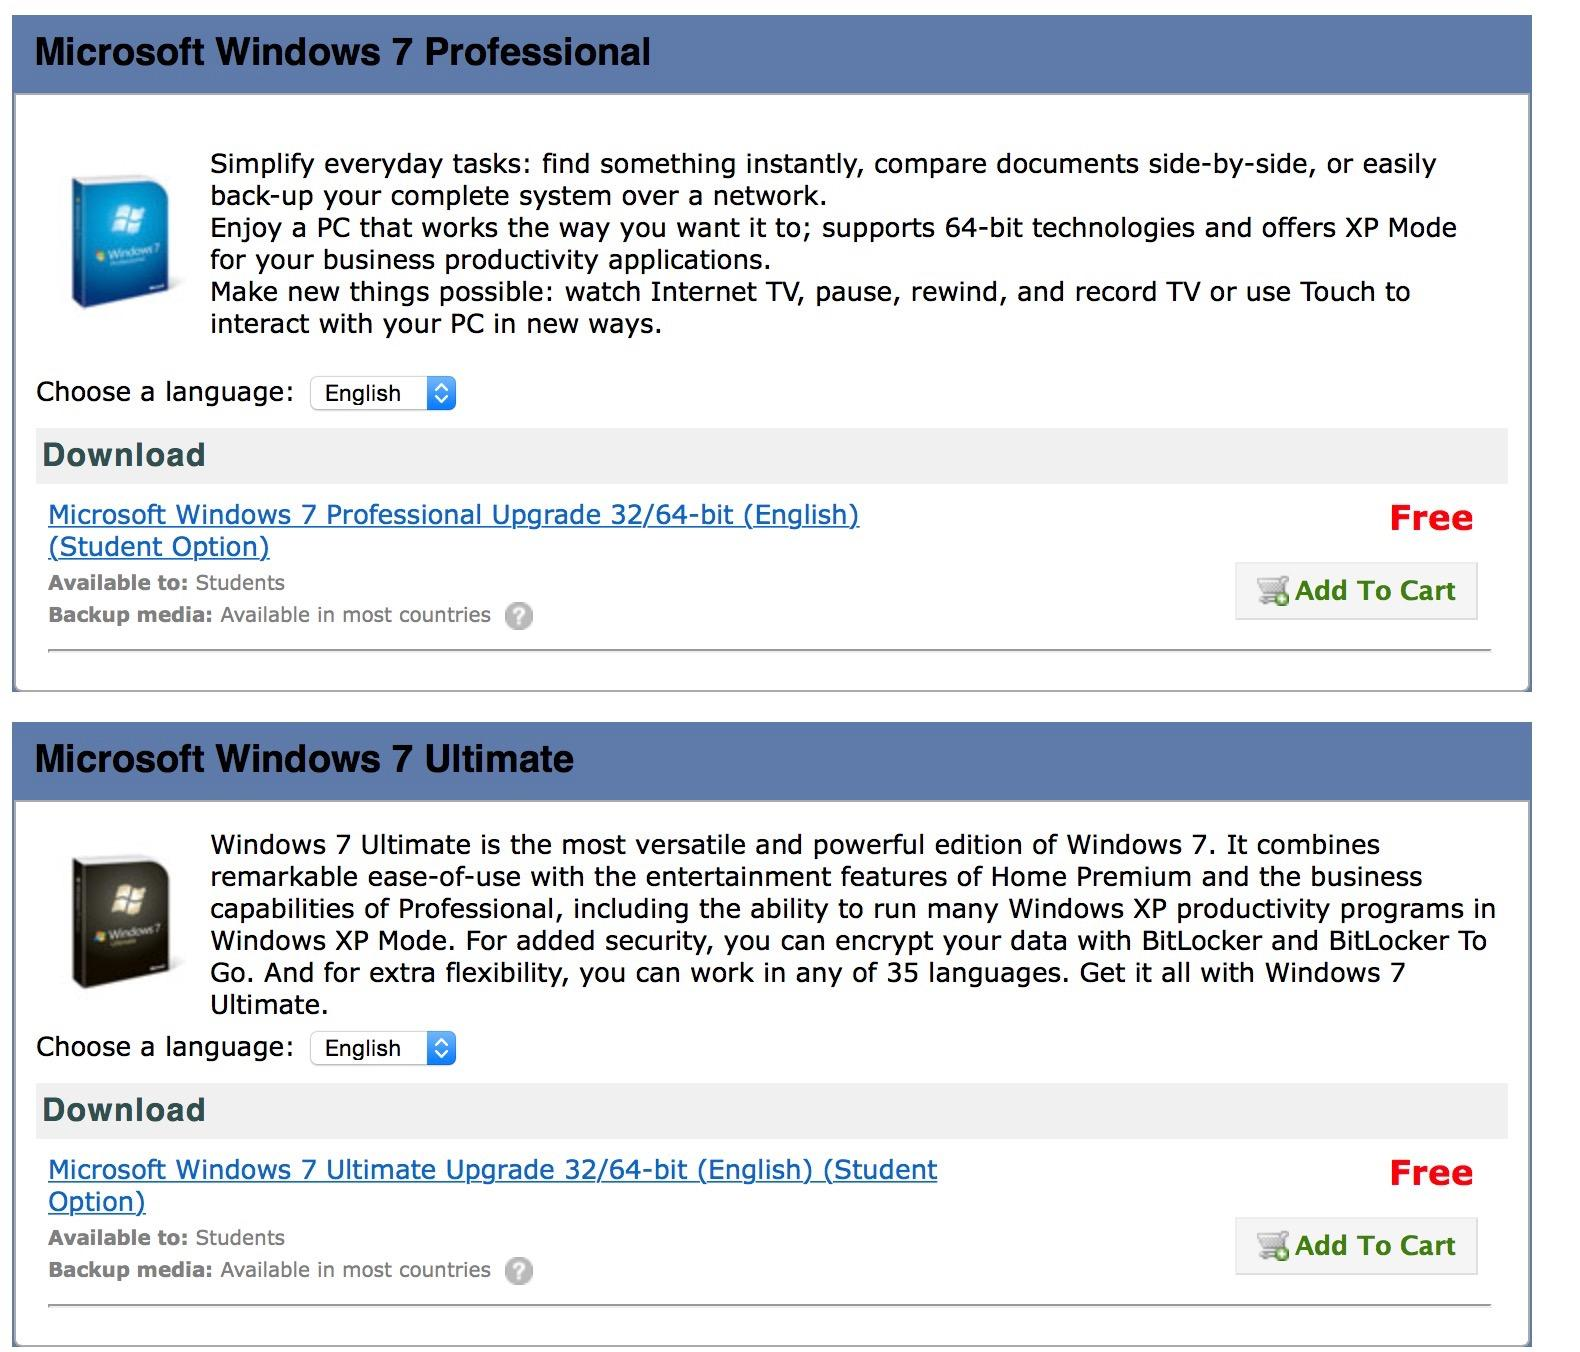 microsoft windows 7 free download for students